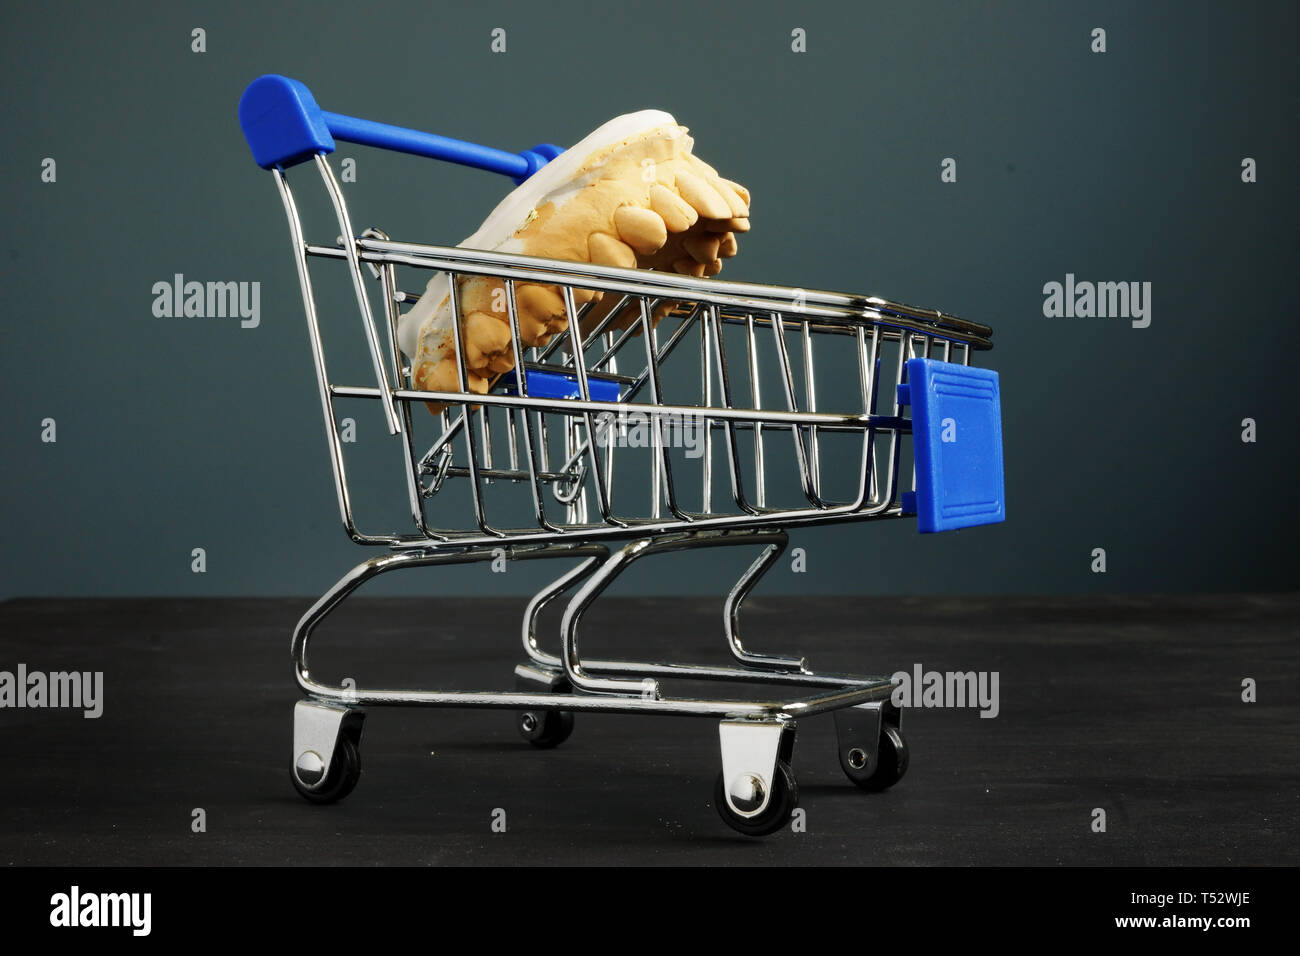 Dental plan and cost of treatment. Teeth cast model in a shopping cart. - Stock Image